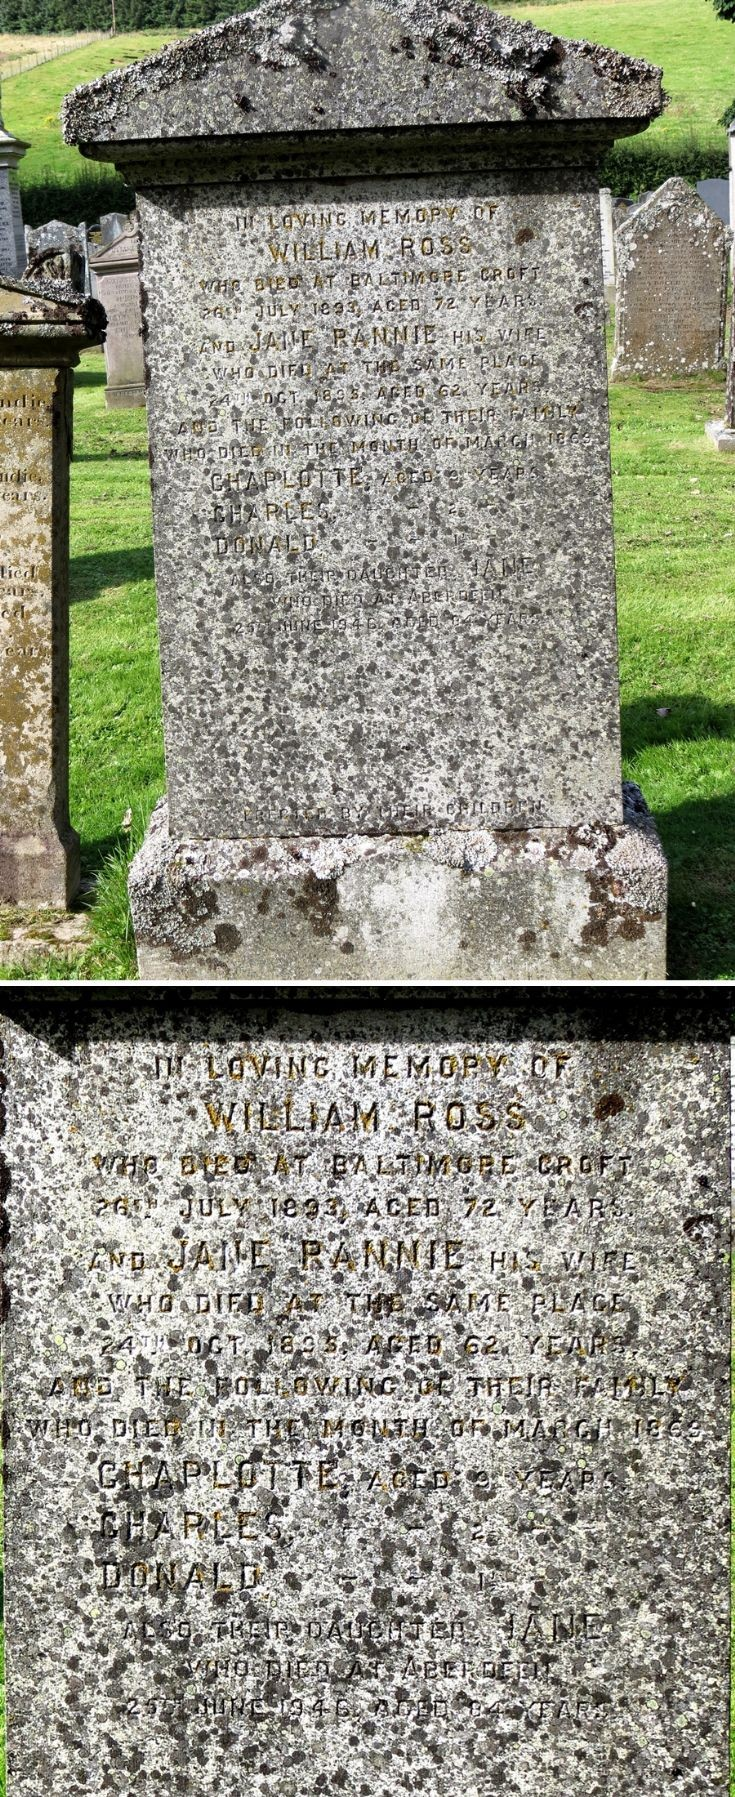 39 Grave Stone No 42 William Ross (Baltimore)